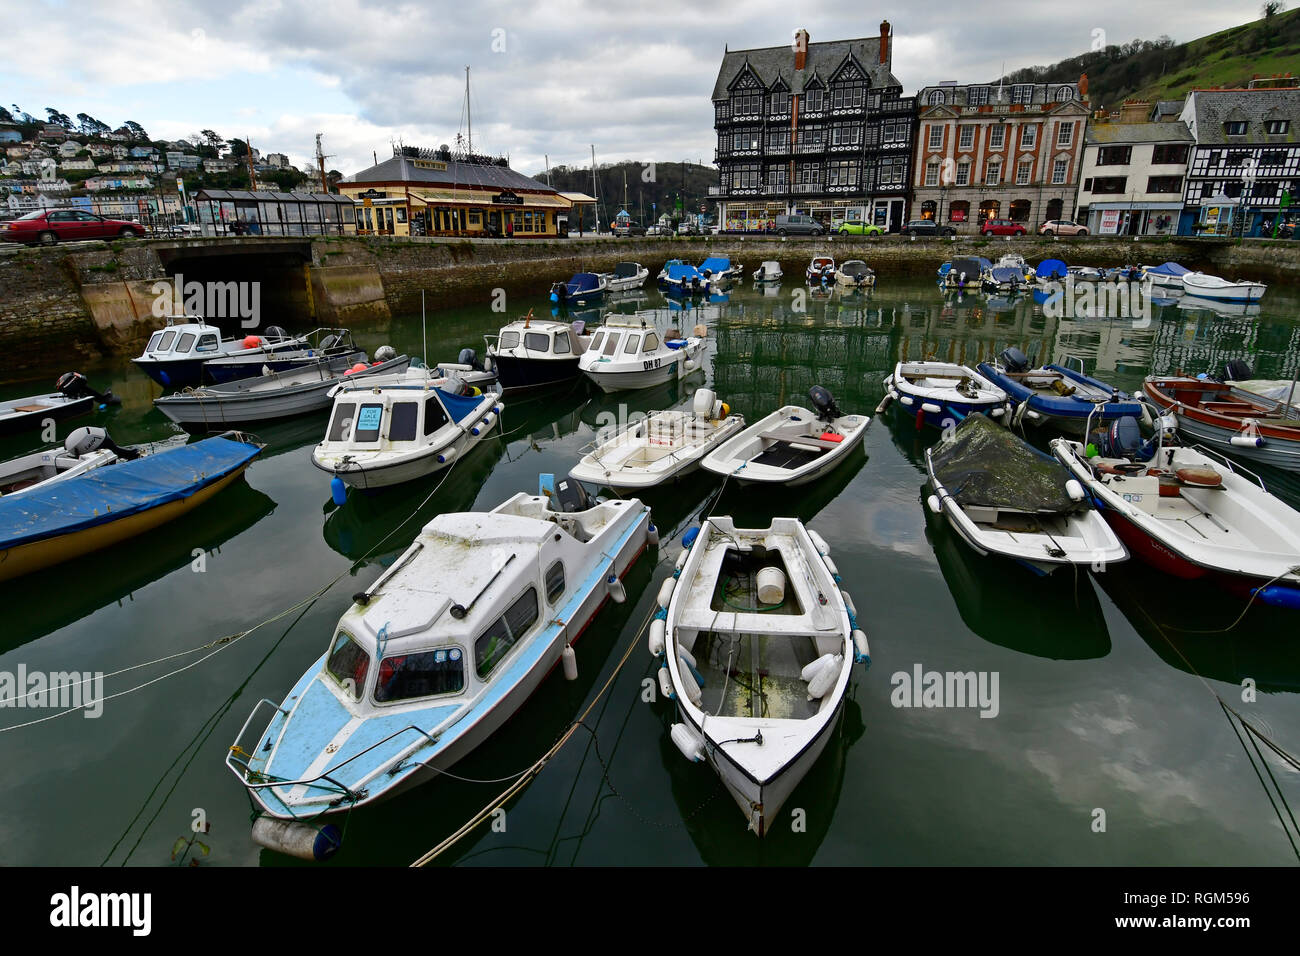 UK Weather.On mild and overcast afternoon on the River Dart,boats and small craft can be seen mored up in harbour. Picture Credit Robert Timoney/Alamy - Stock Image